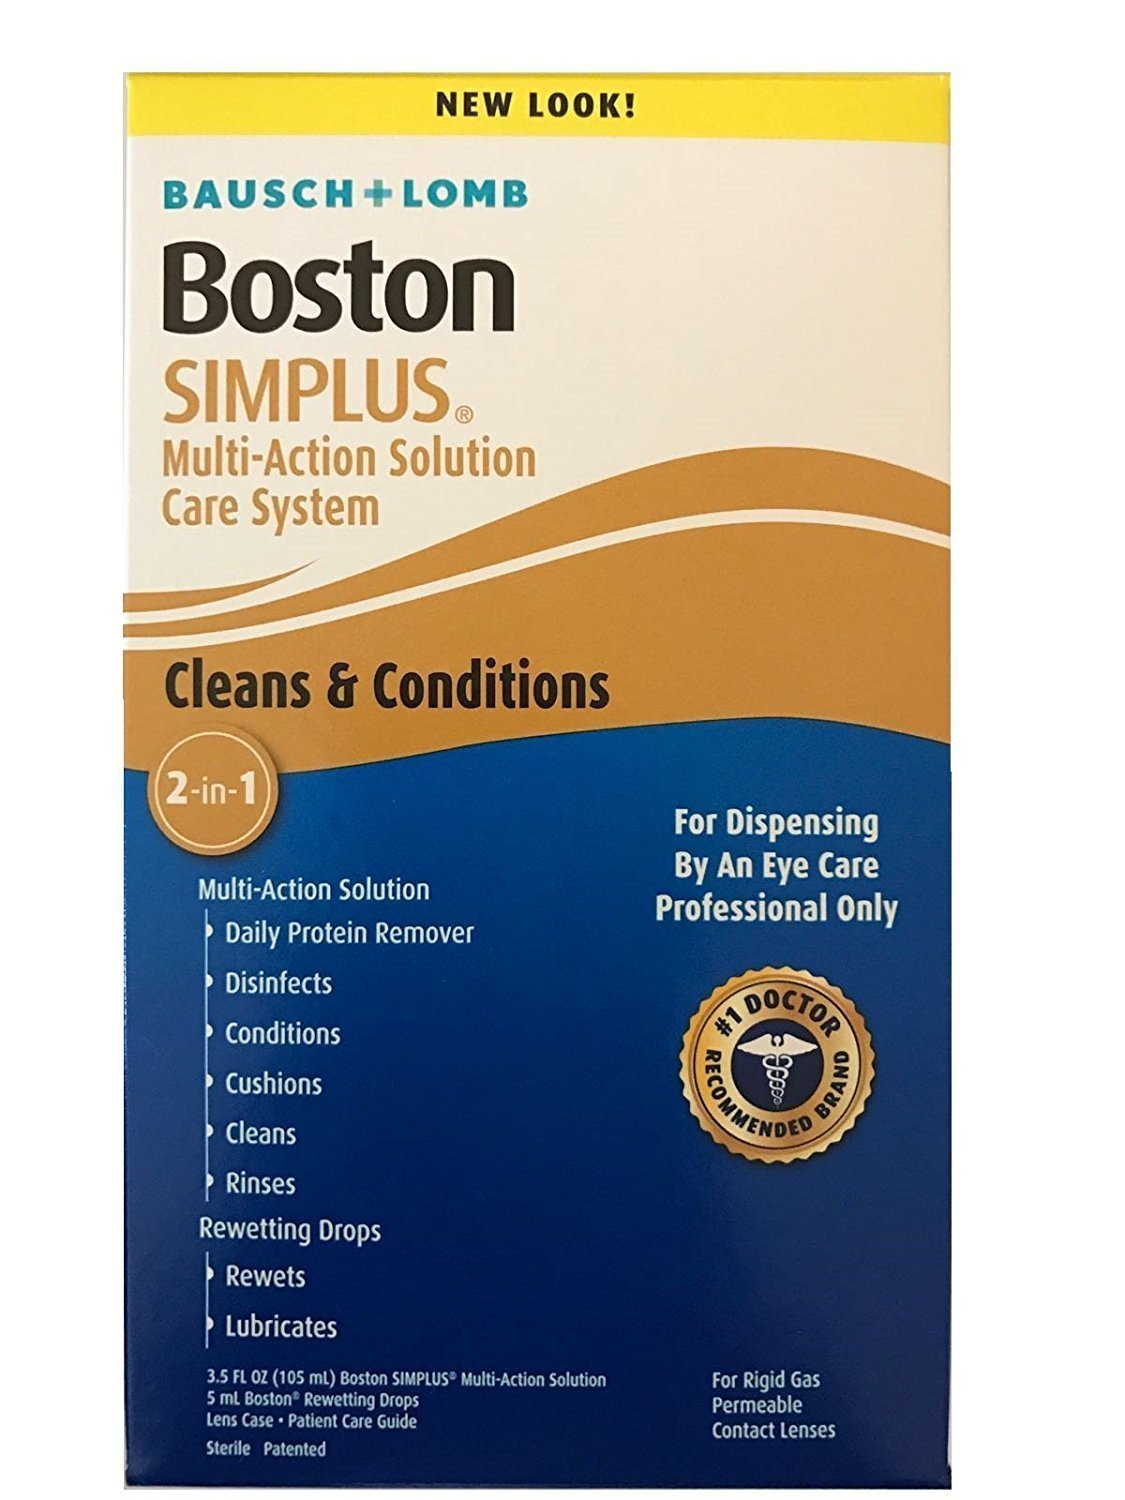 Bausch & Lomb Boston Simplus Multi-Action Solution-3.5 oz, Bonus Rewetting Drop